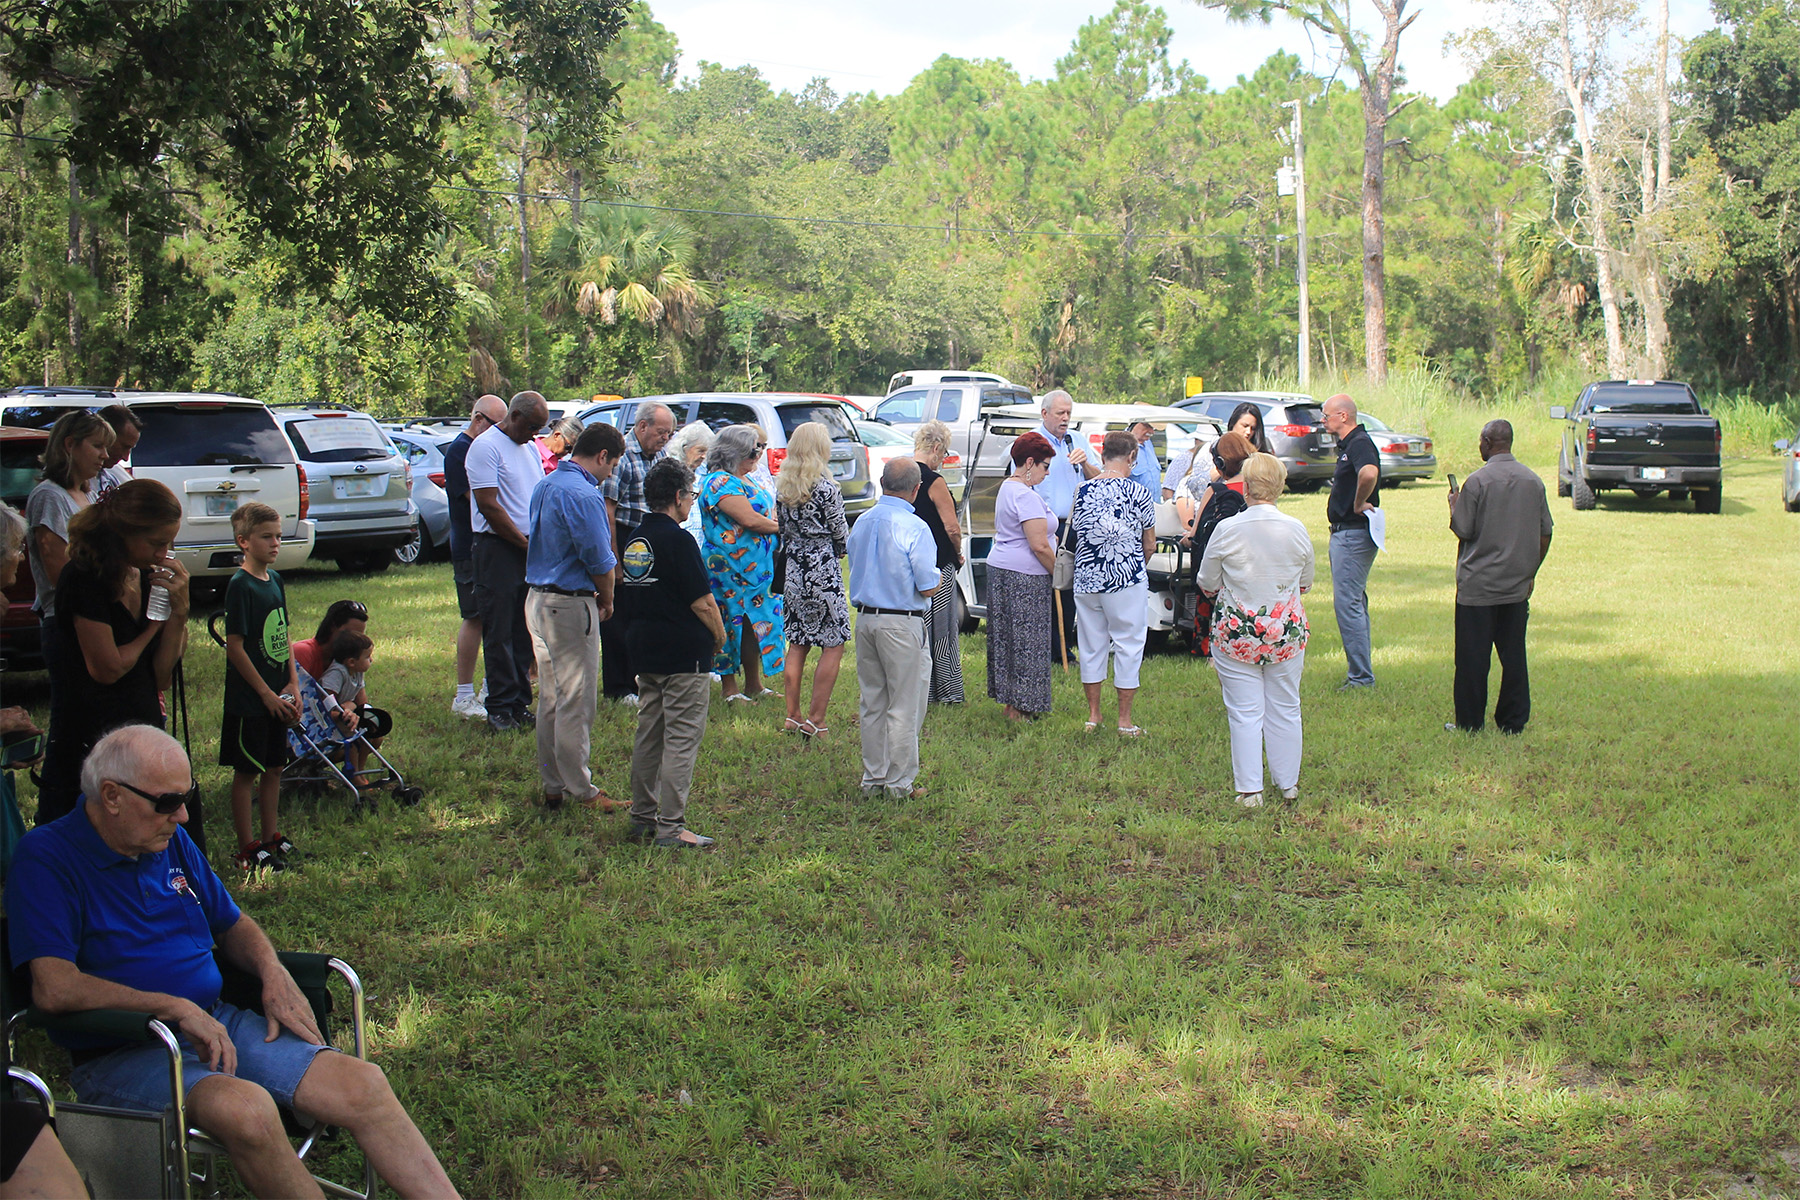 MFI Vice President, Mr. Larry Campbell, leads the crowd gathered for the Hospitality Park Ground Breaking Ceremony in a moment of prayer.